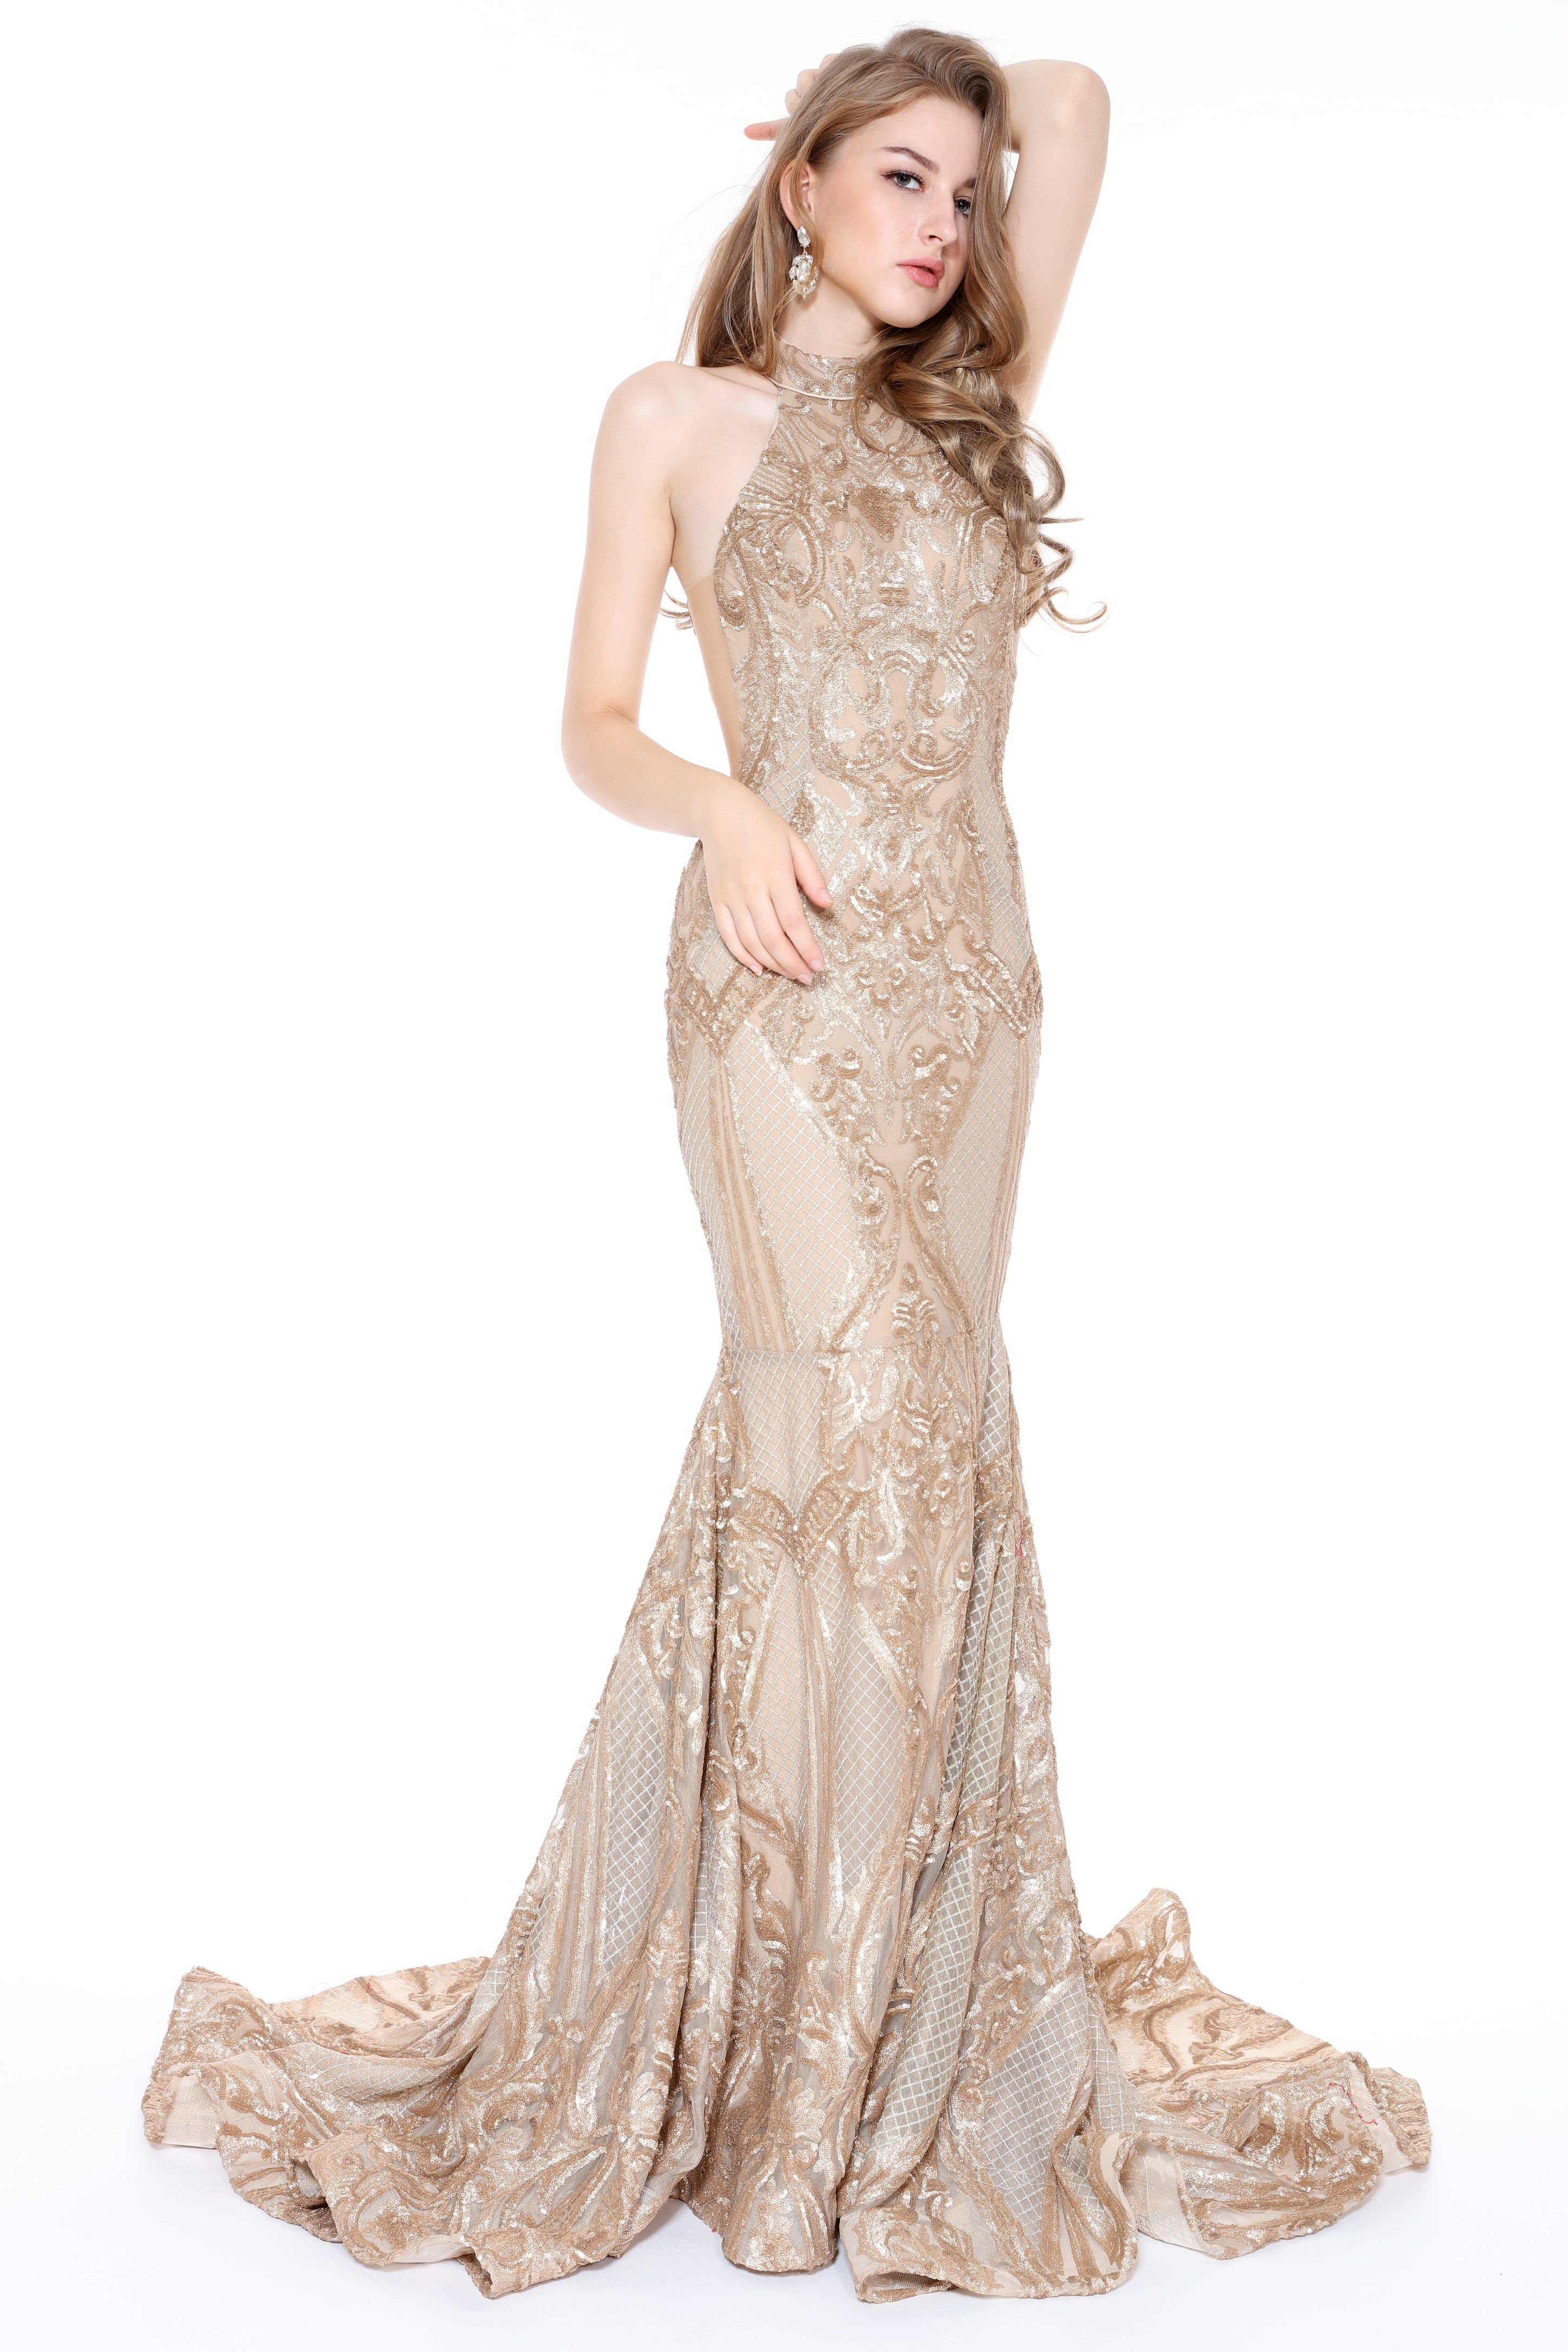 Serena Dress In 2019 Prom Style Guide A Little Party Dresses